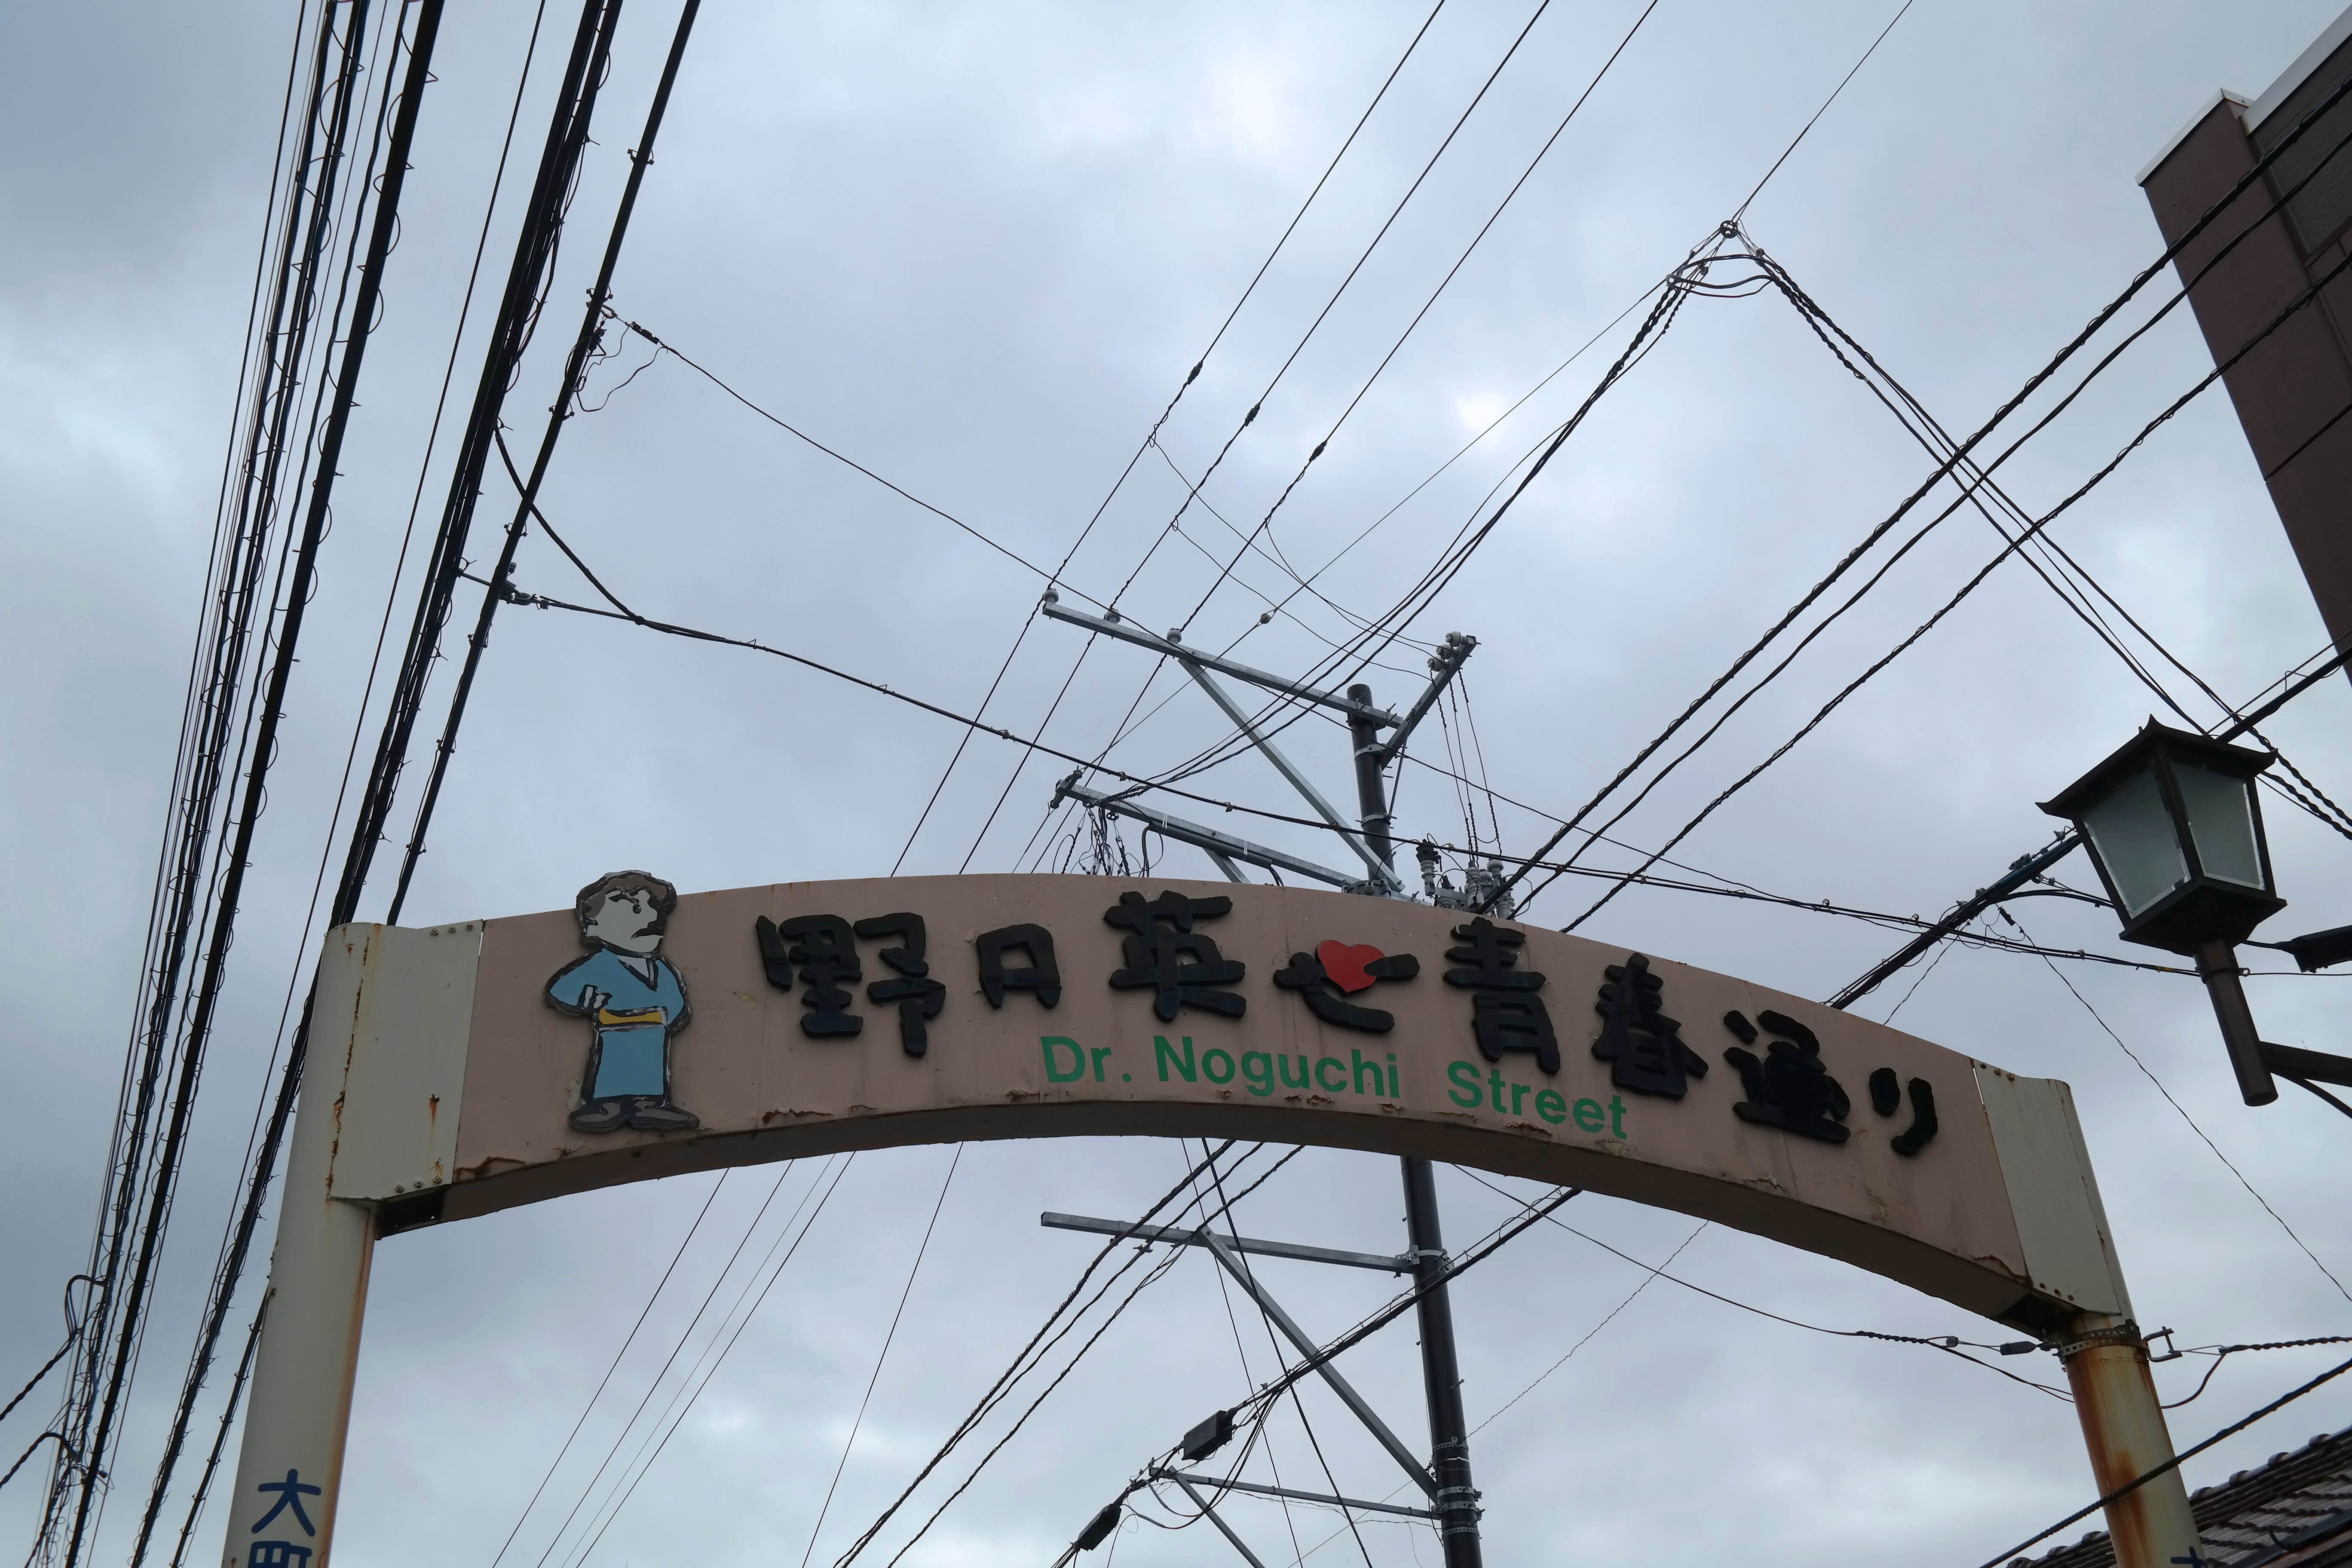 aizu street signs and lines